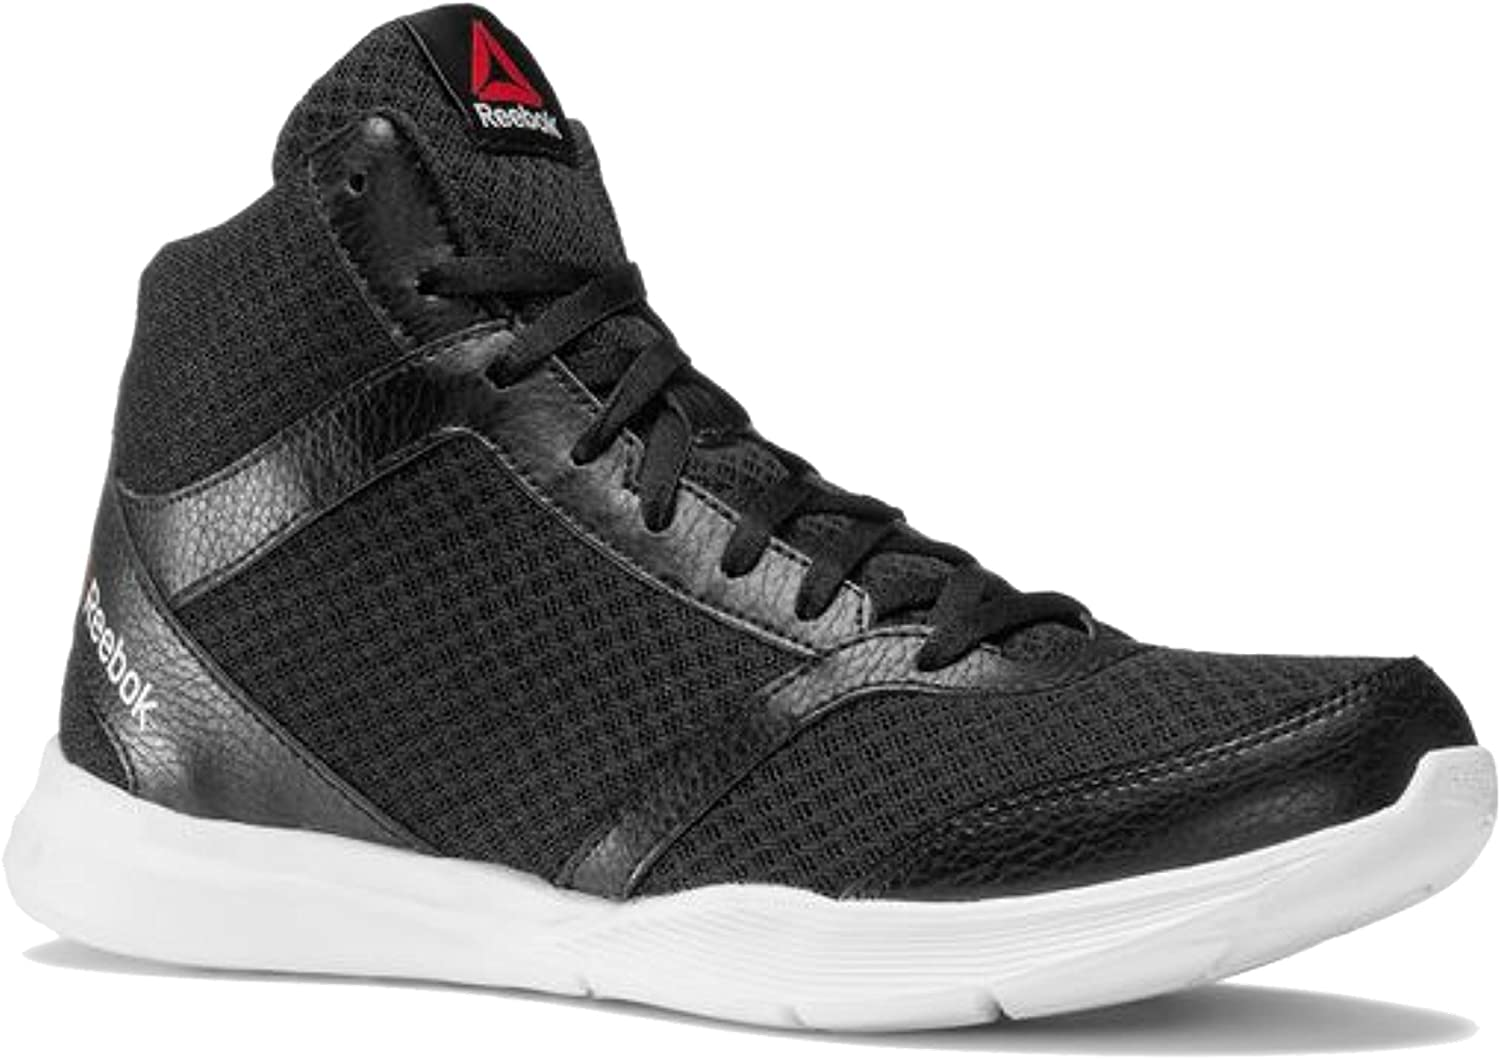 BASKETS Reebok Cardio Workout Mid RS